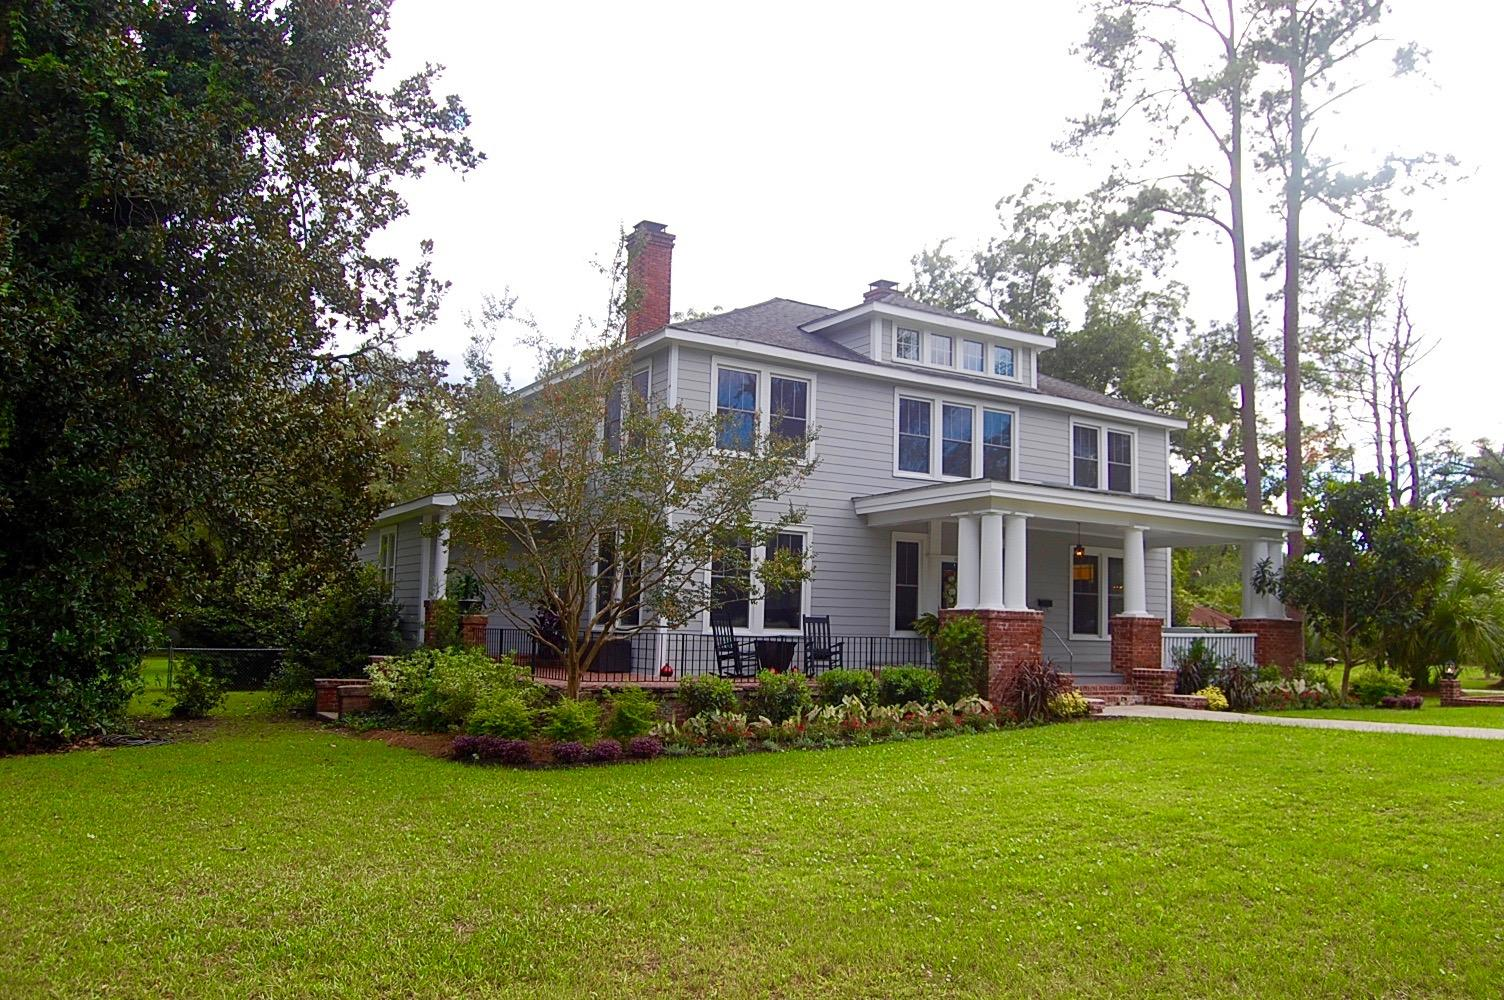 Photo of 103 SW Railroad Ave, St George, SC 29477